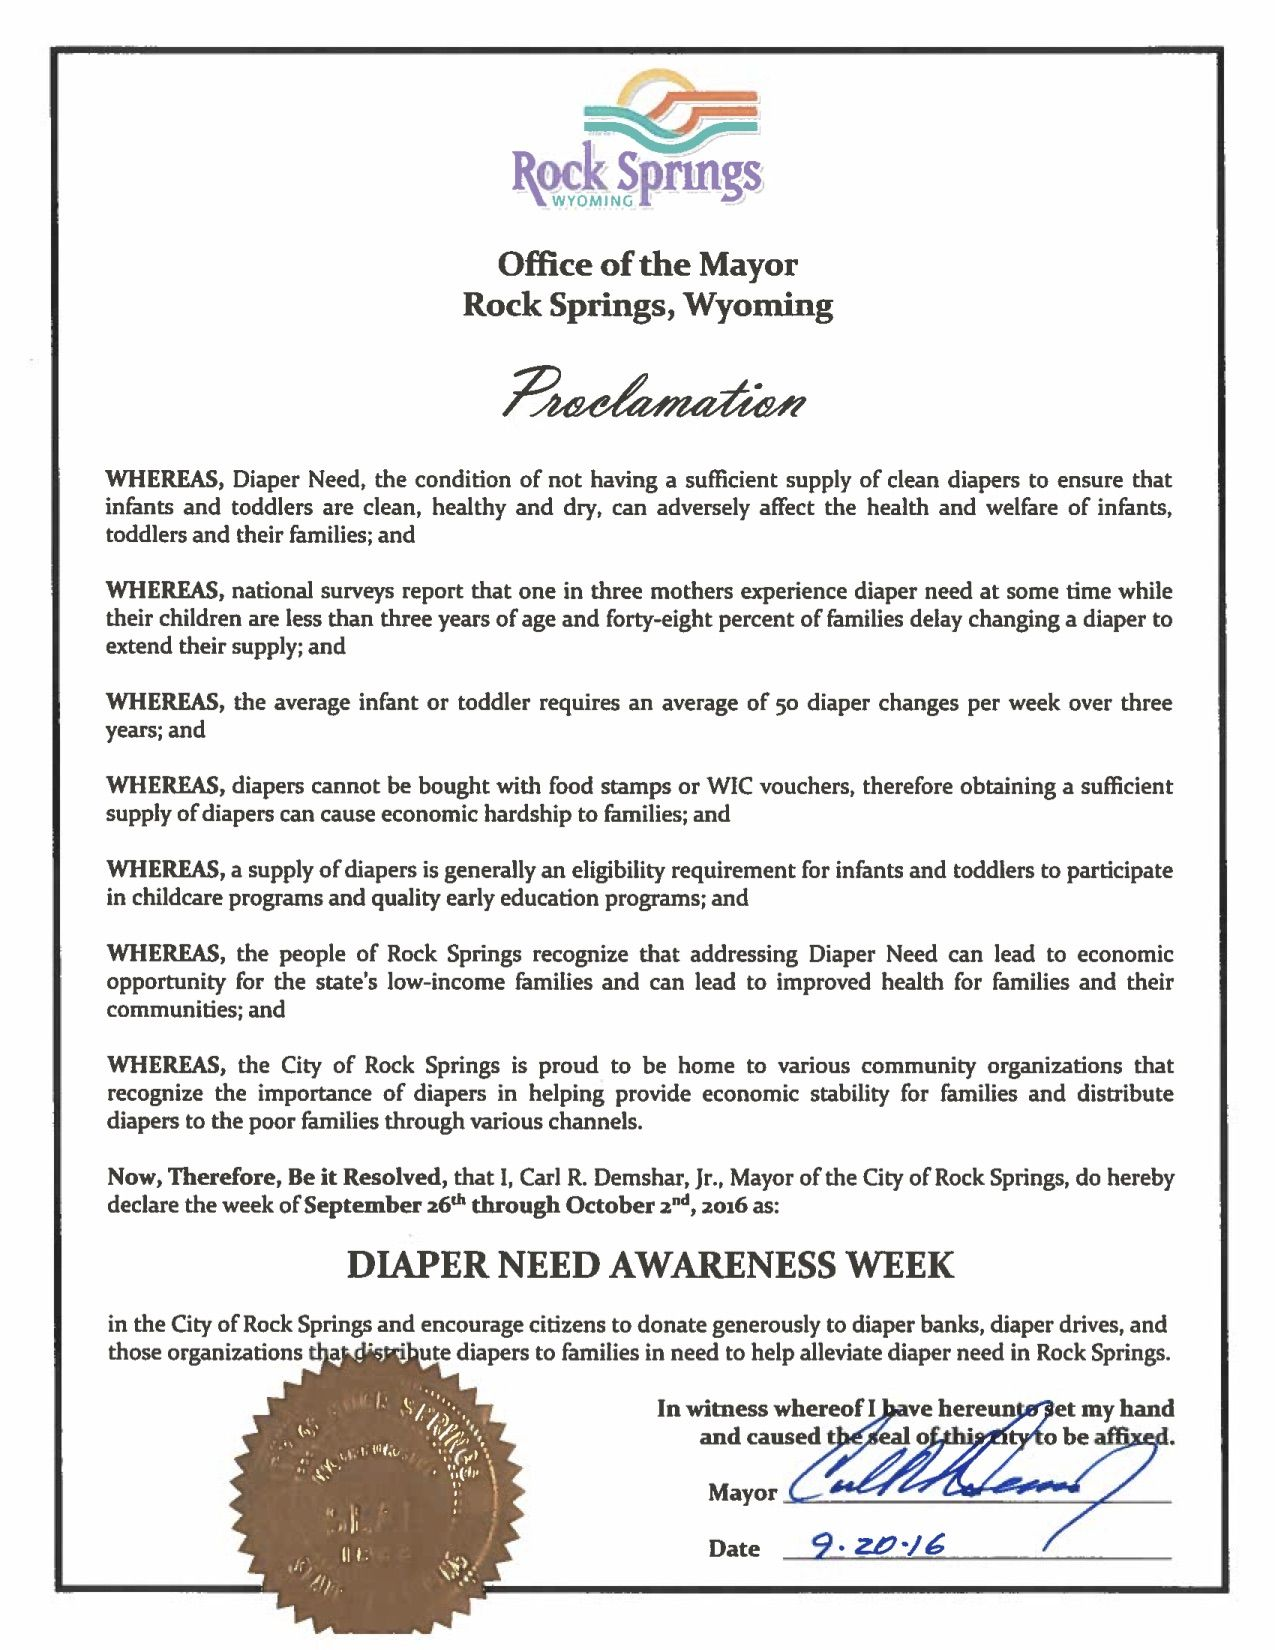 ROCK SPRINGS, WY - Mayoral proclamation recognizing Diaper Need Awareness Week (Sep. 26-Oct. 2, 2016) #DiaperNeed Diaperneed.org